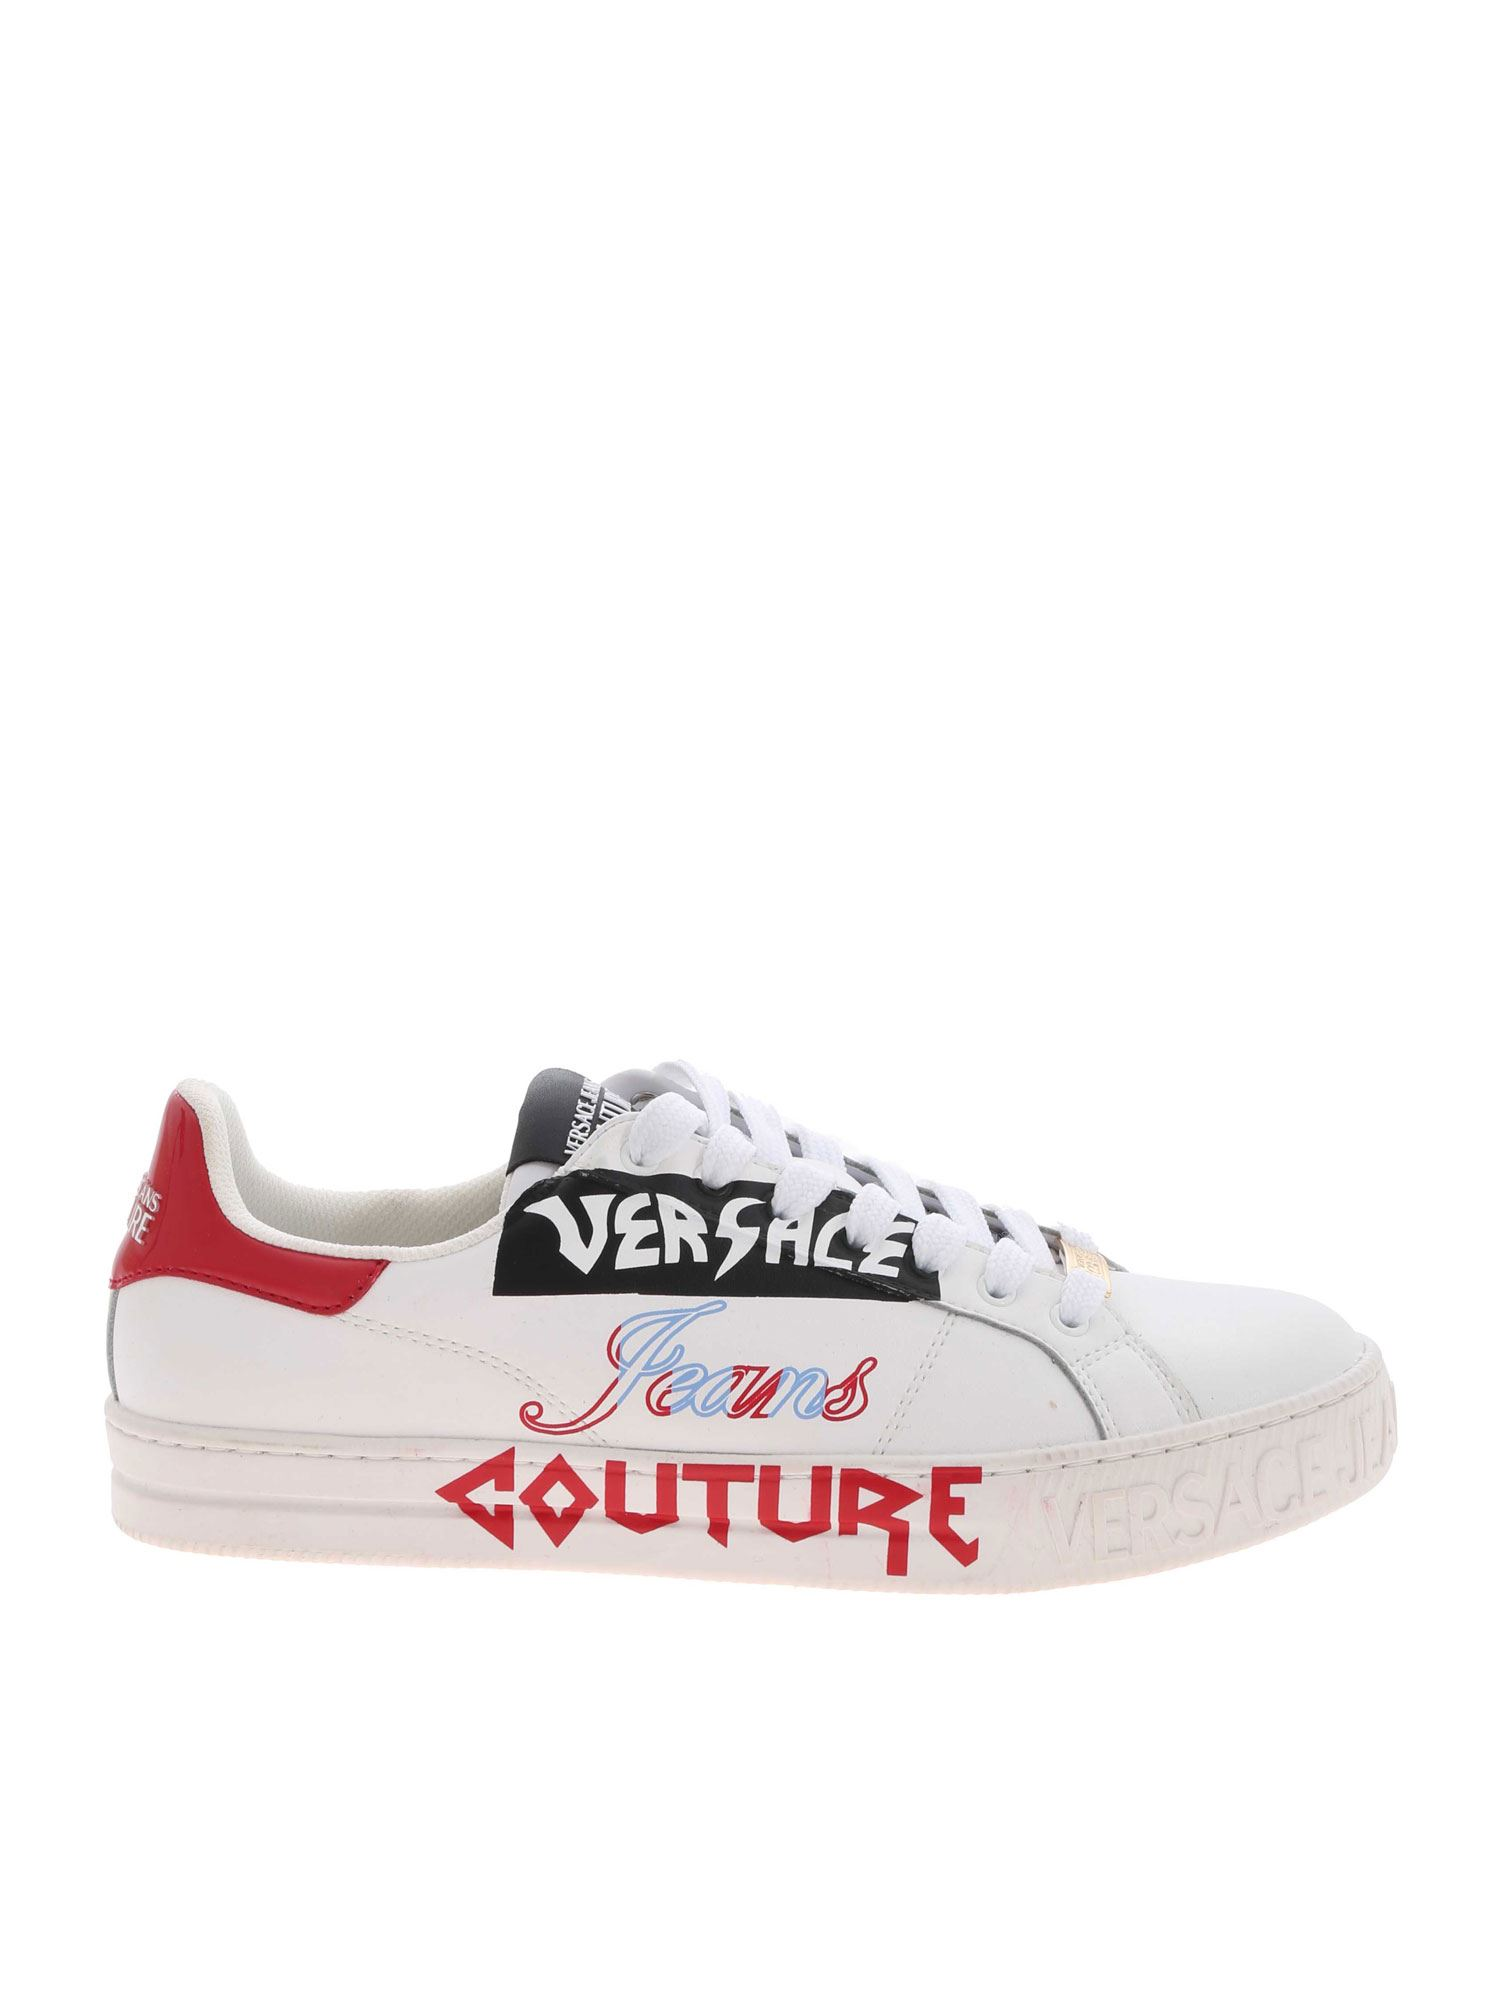 VERSACE JEANS COUTURE CONTRASTING LOGO SNEAKERS IN WHITE